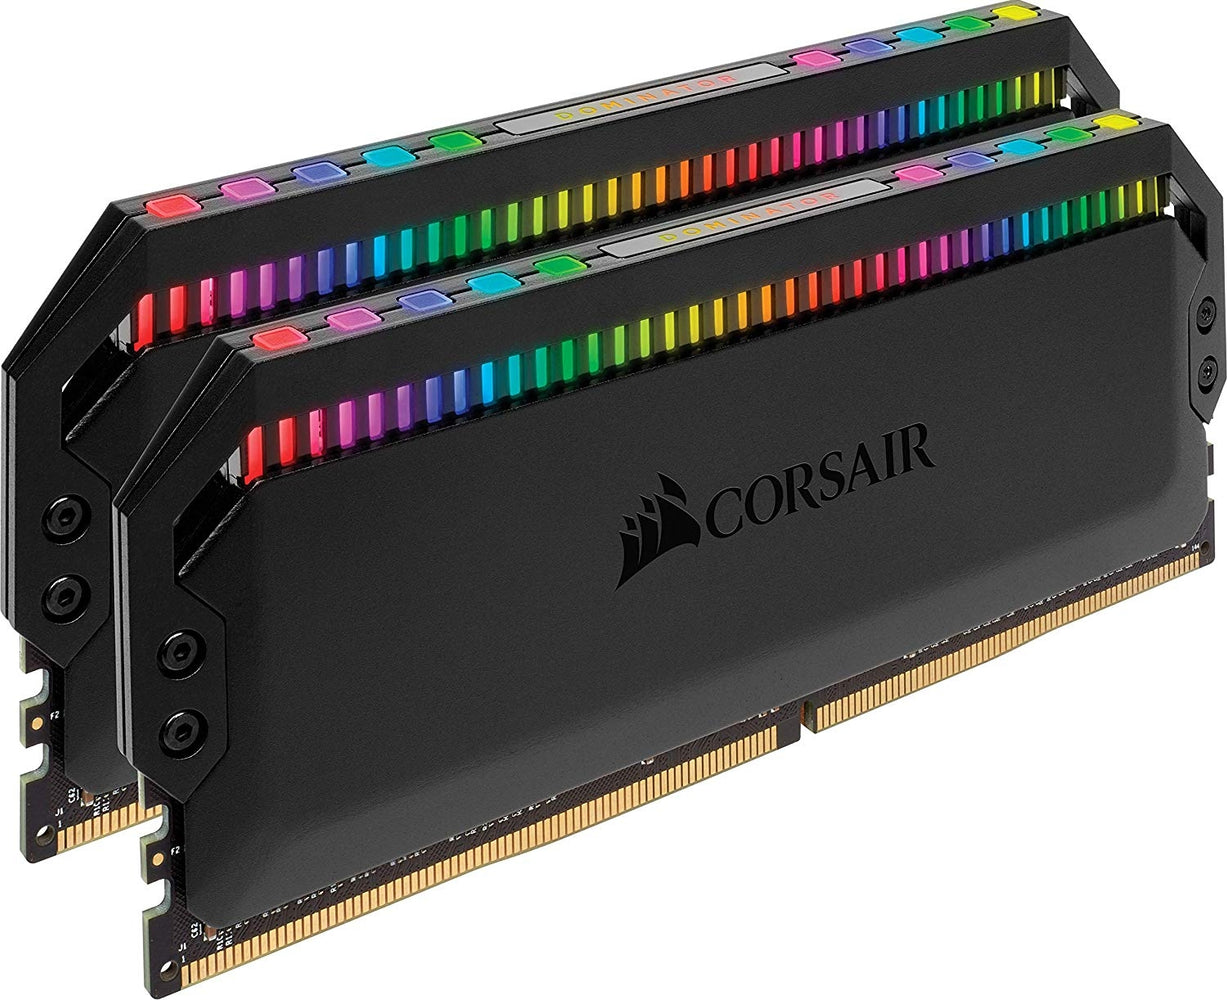 Corsair Dominator Platinum RGB 16 GB (2 x 8 GB) DDR4 3000 MHz C15, Enthusiast RGB LED Illuminated Memory Kit - Black